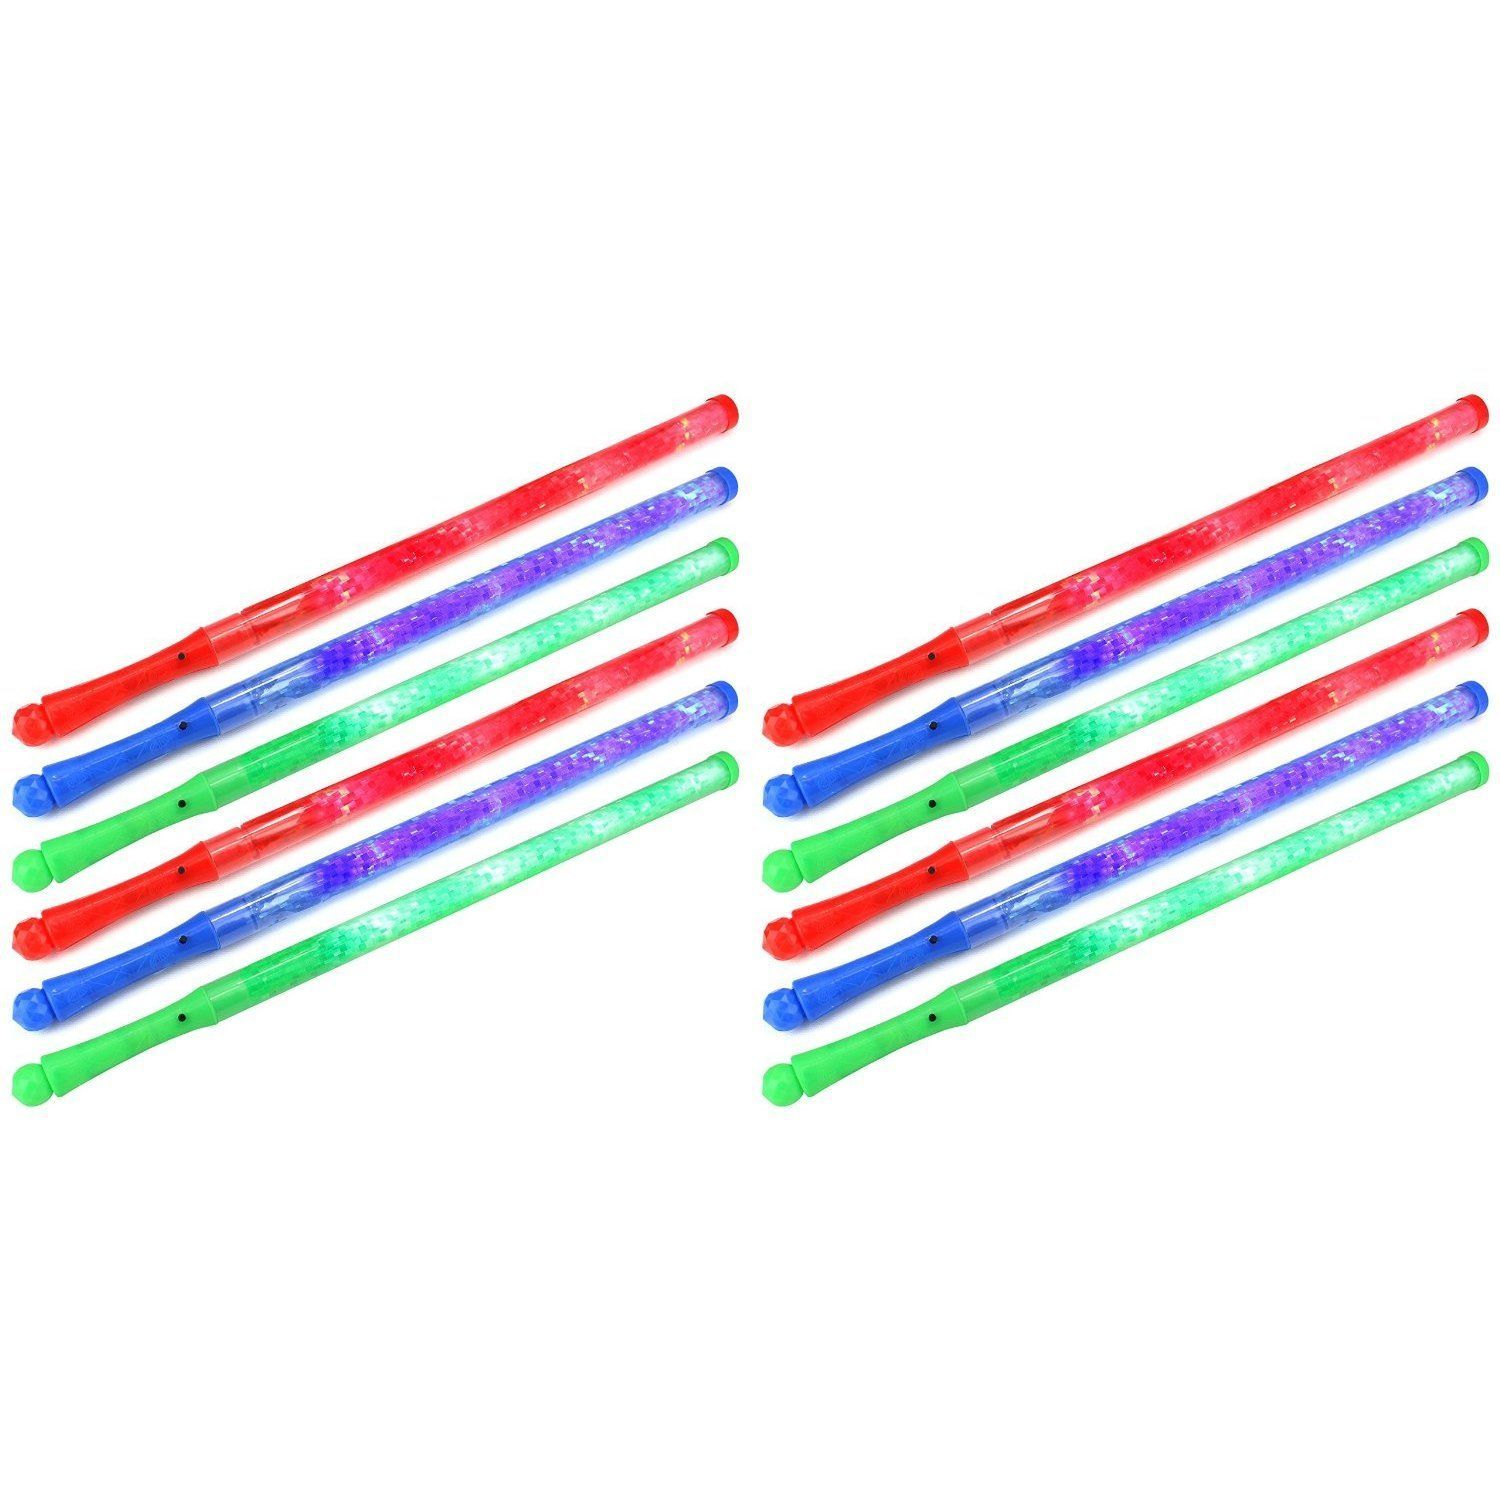 Velocity Toys Flashing LED Solid Light-up Party Favor Toy Light Sword Sabers